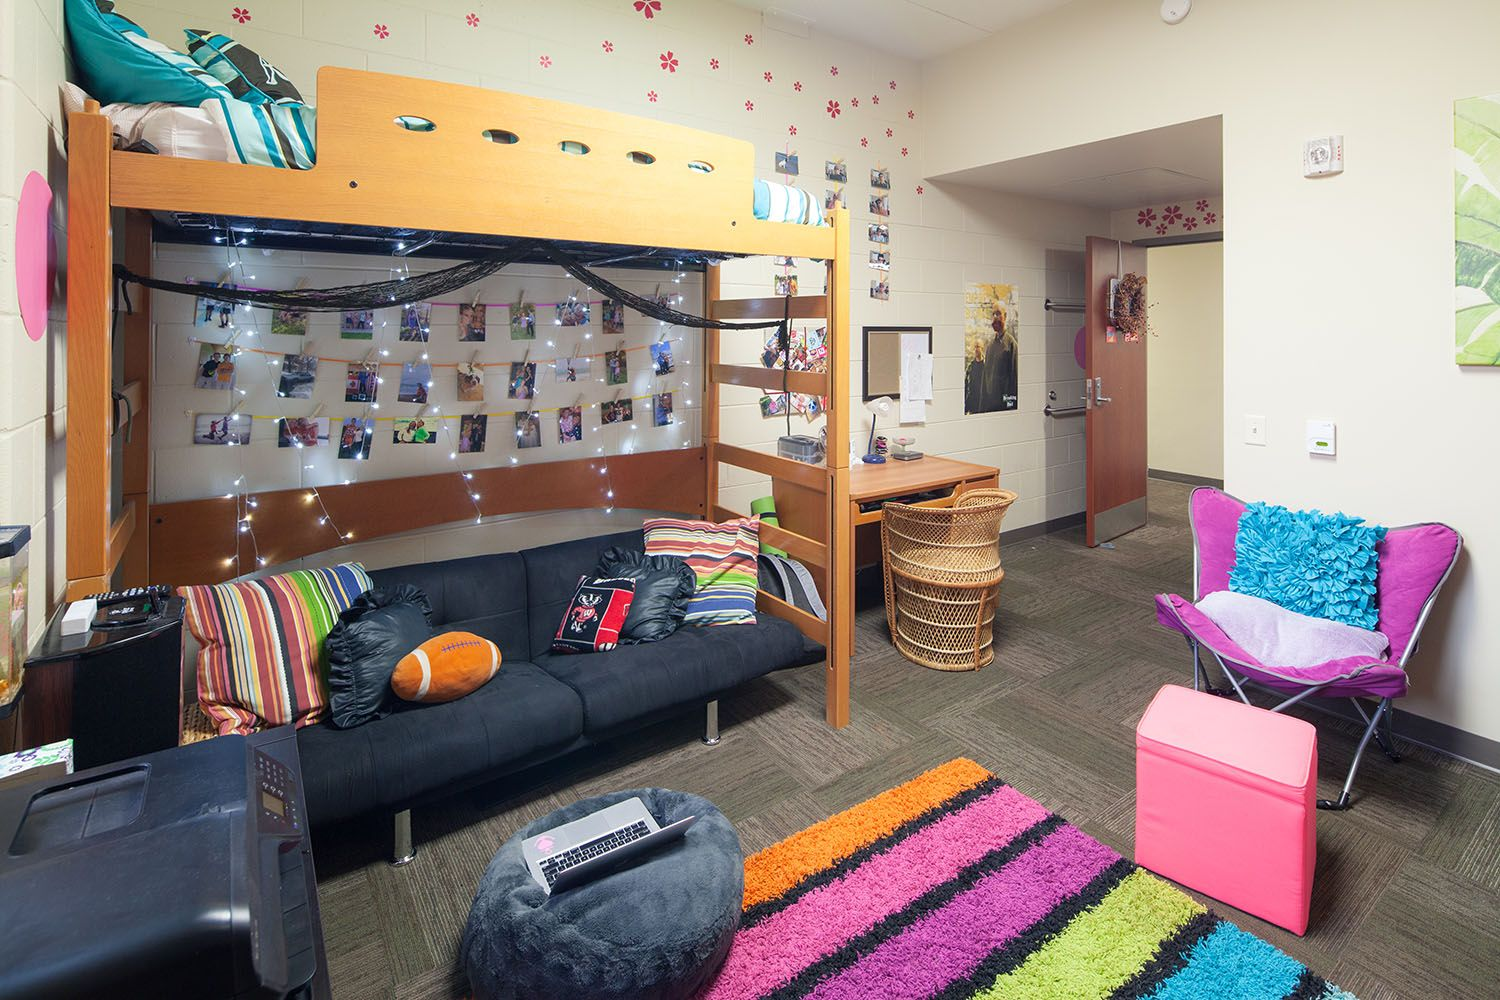 Uw madison dorm rooms google search dorm pinterest dorm uw madison dorm rooms google search publicscrutiny Choice Image